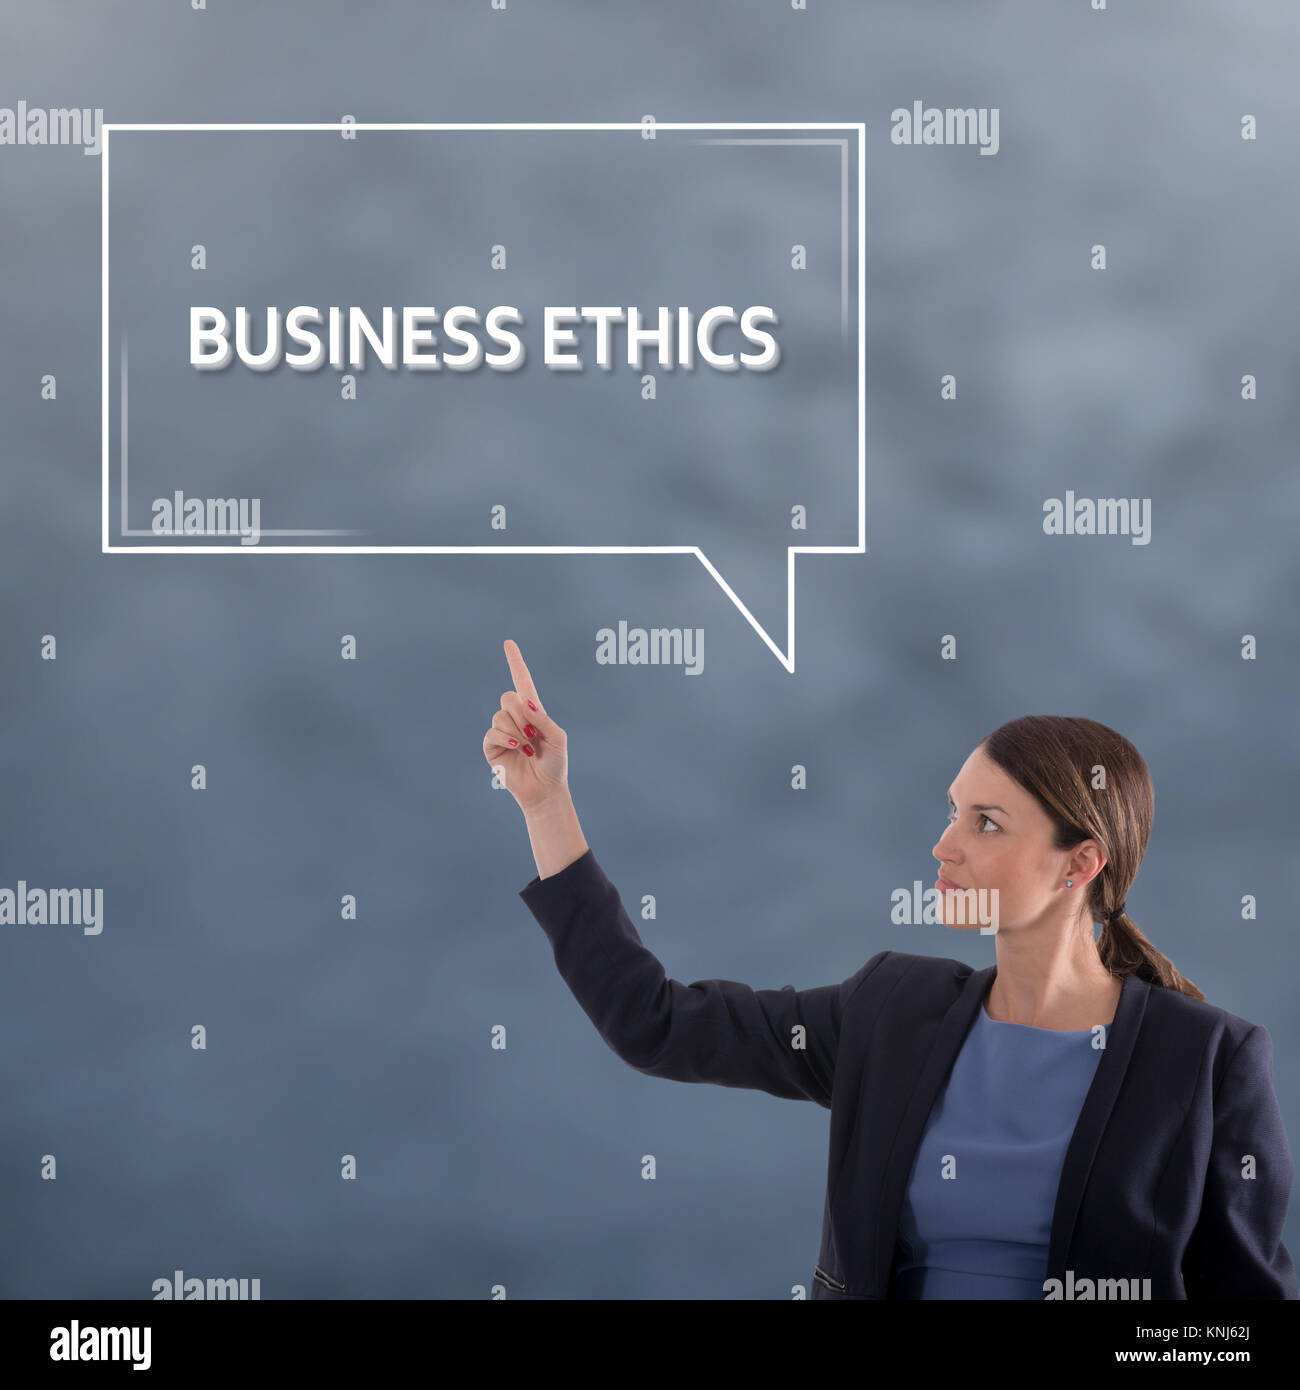 BUSINESS ETHICS Business Concept. Business Woman Graphic Concept - Stock Image